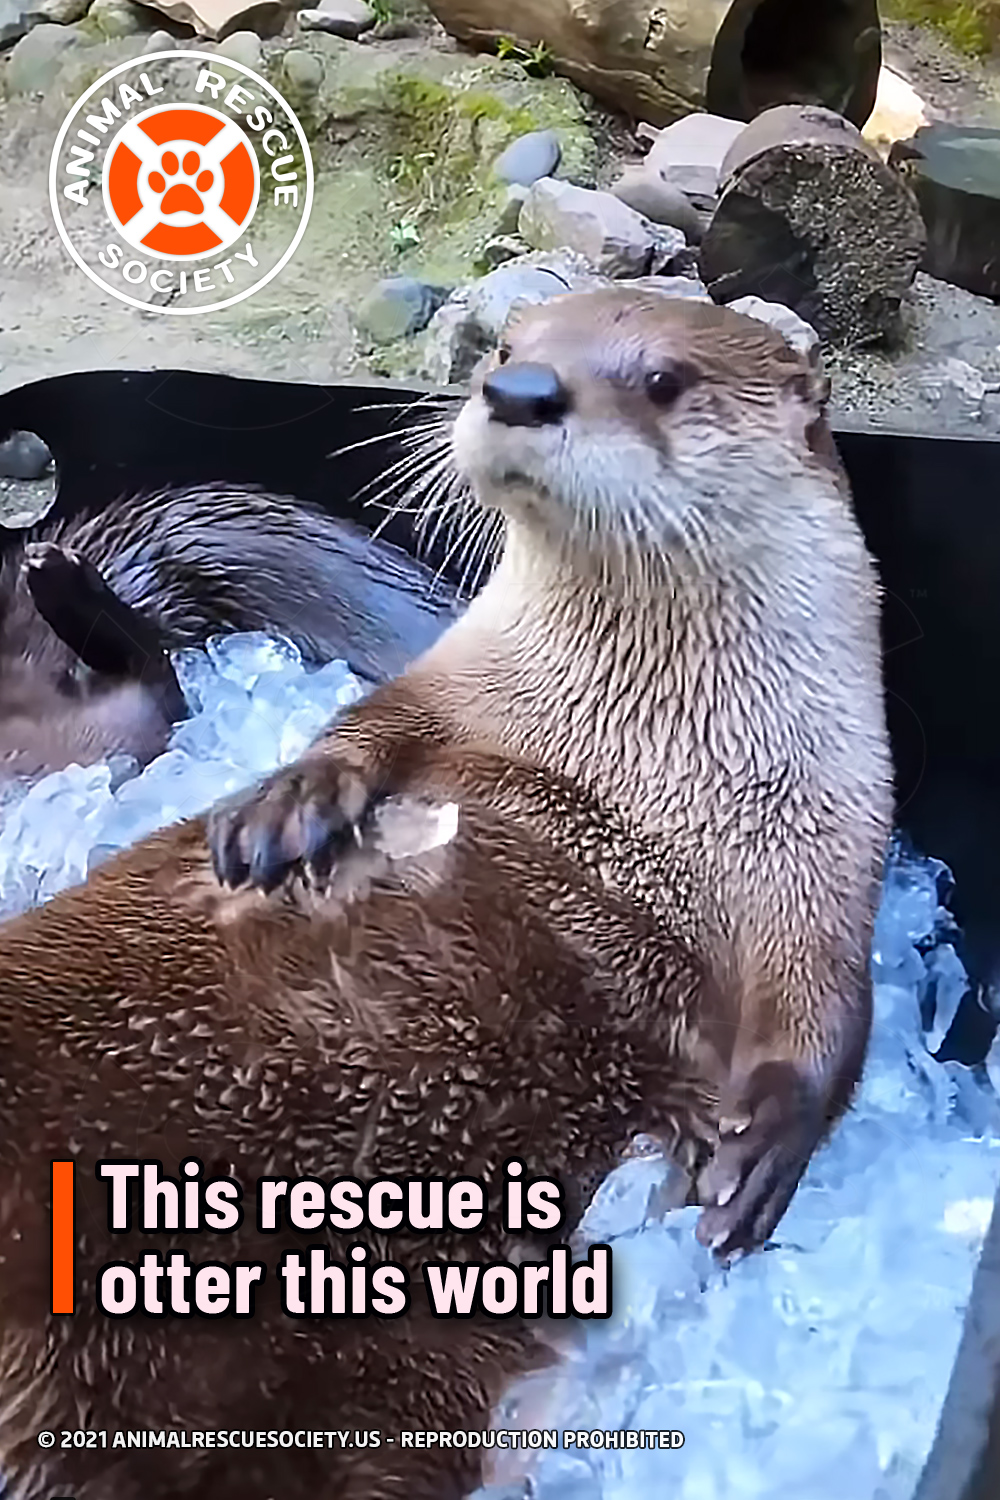 This rescue is otter this world